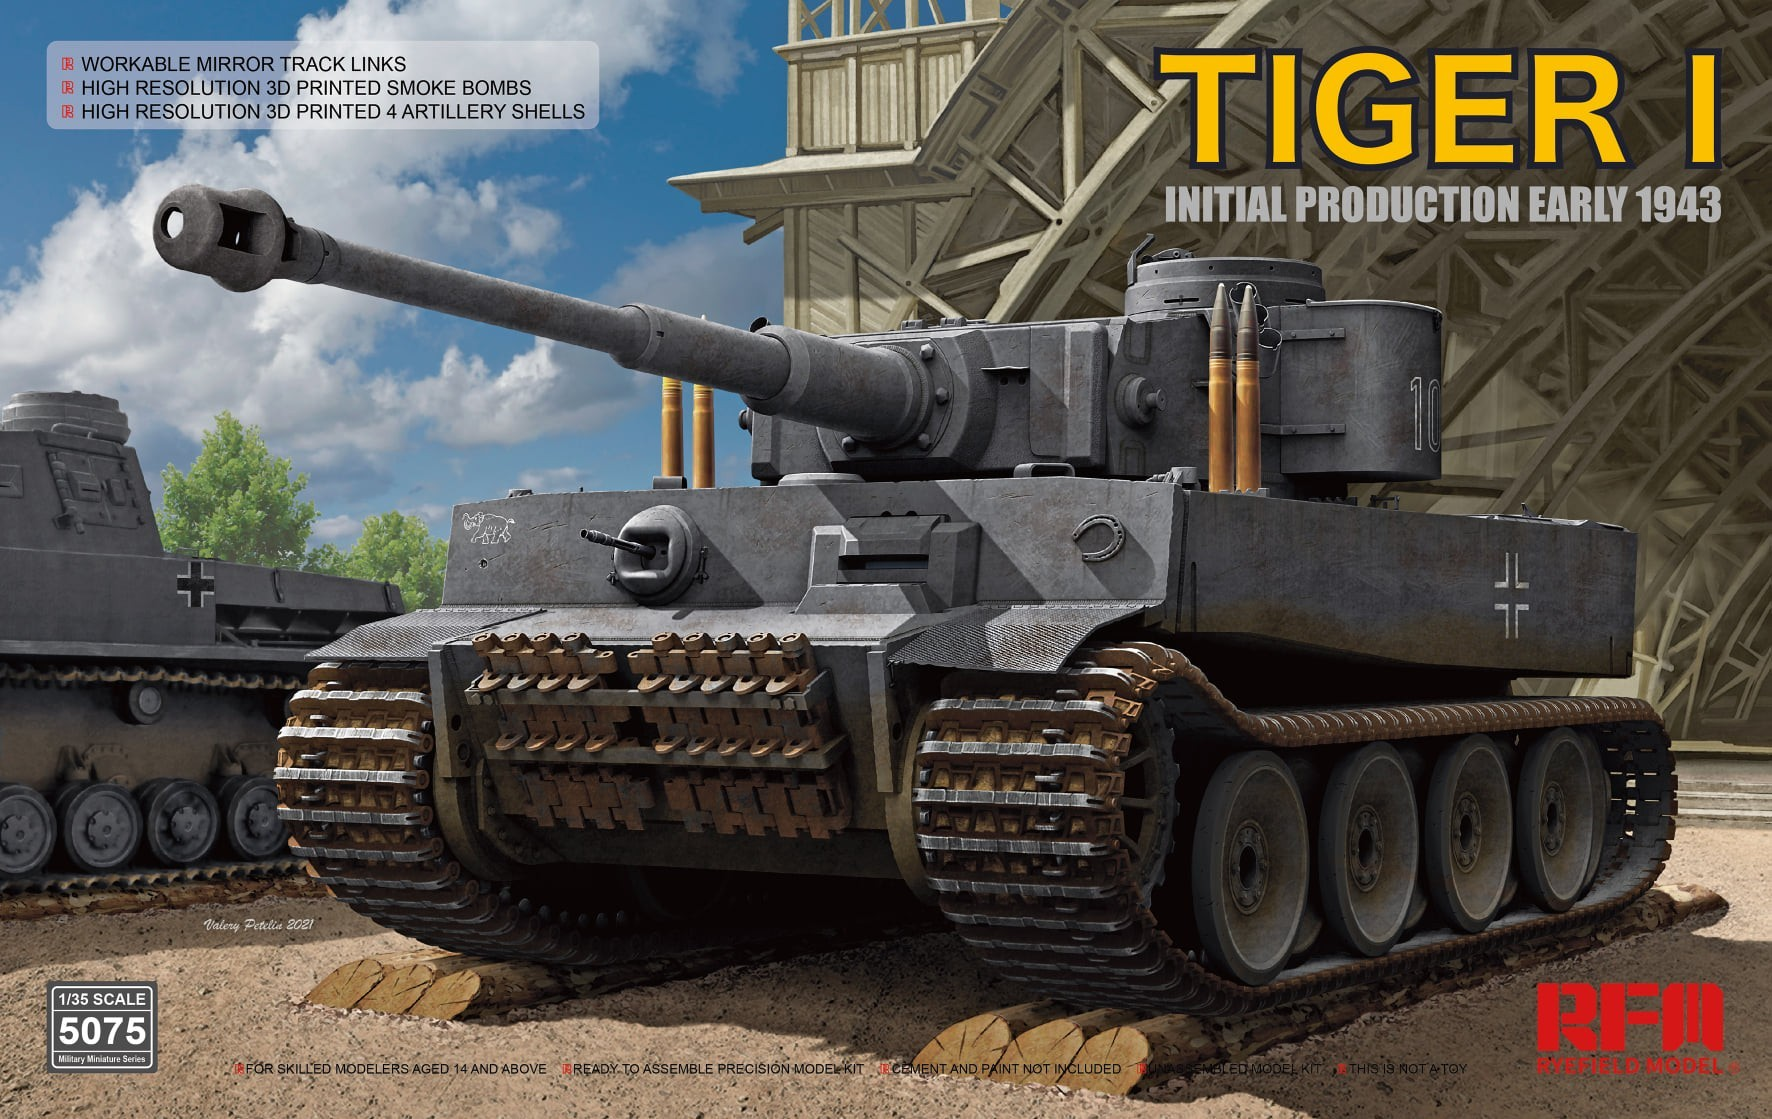 RM-5075. Tiger I 100# initial production early 1943